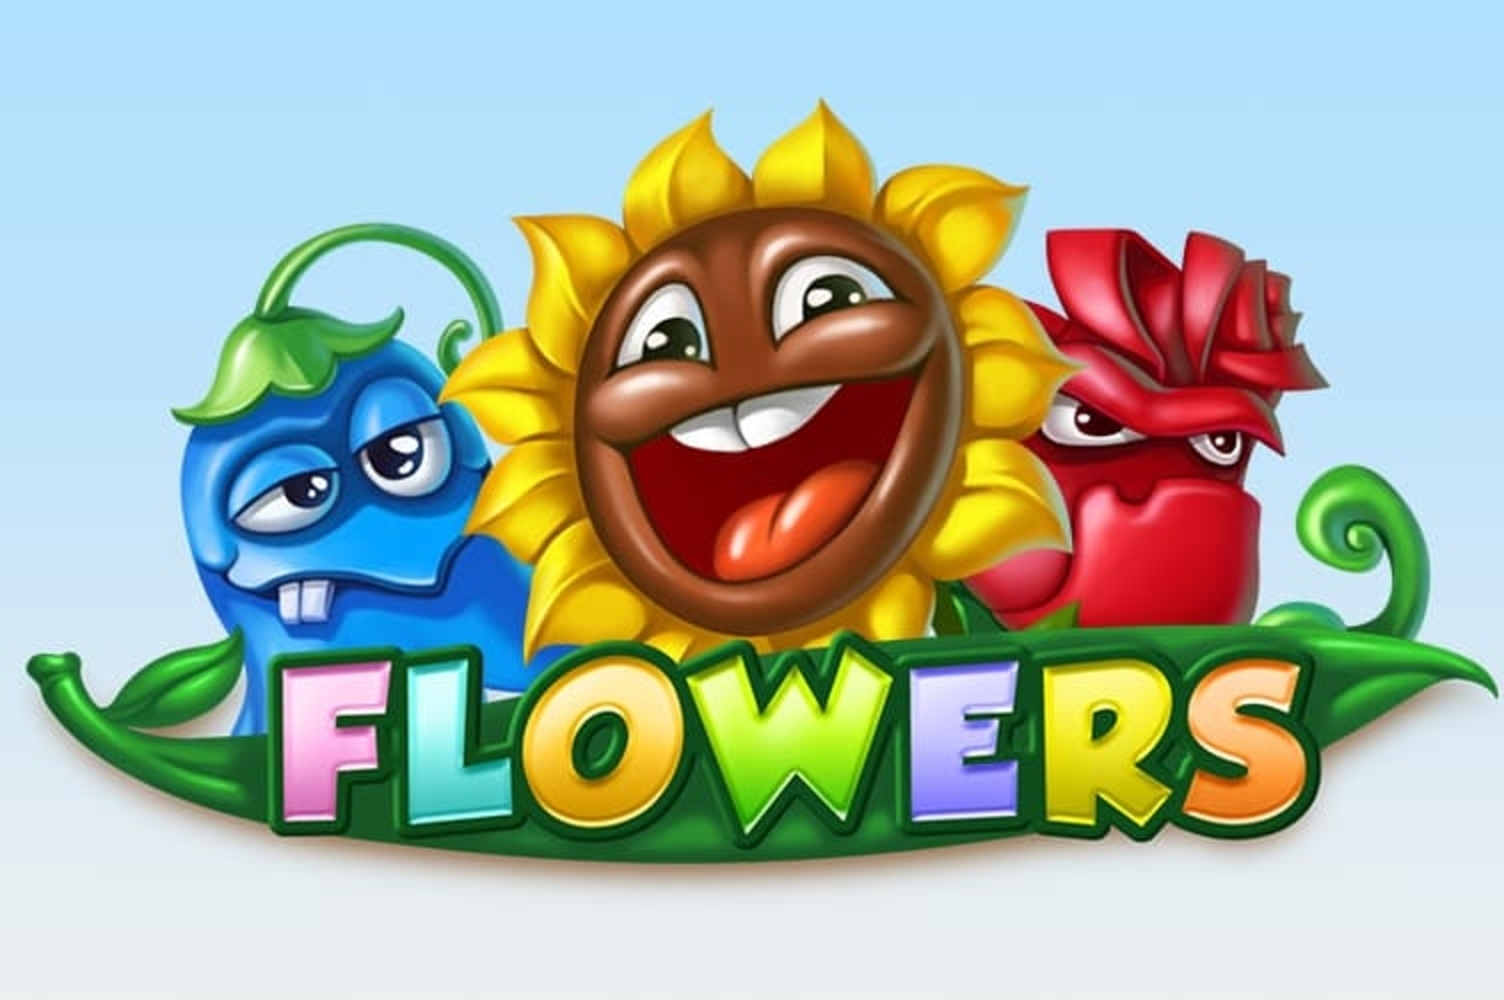 Se Flowers Online Slot Demo Game, NetEnt